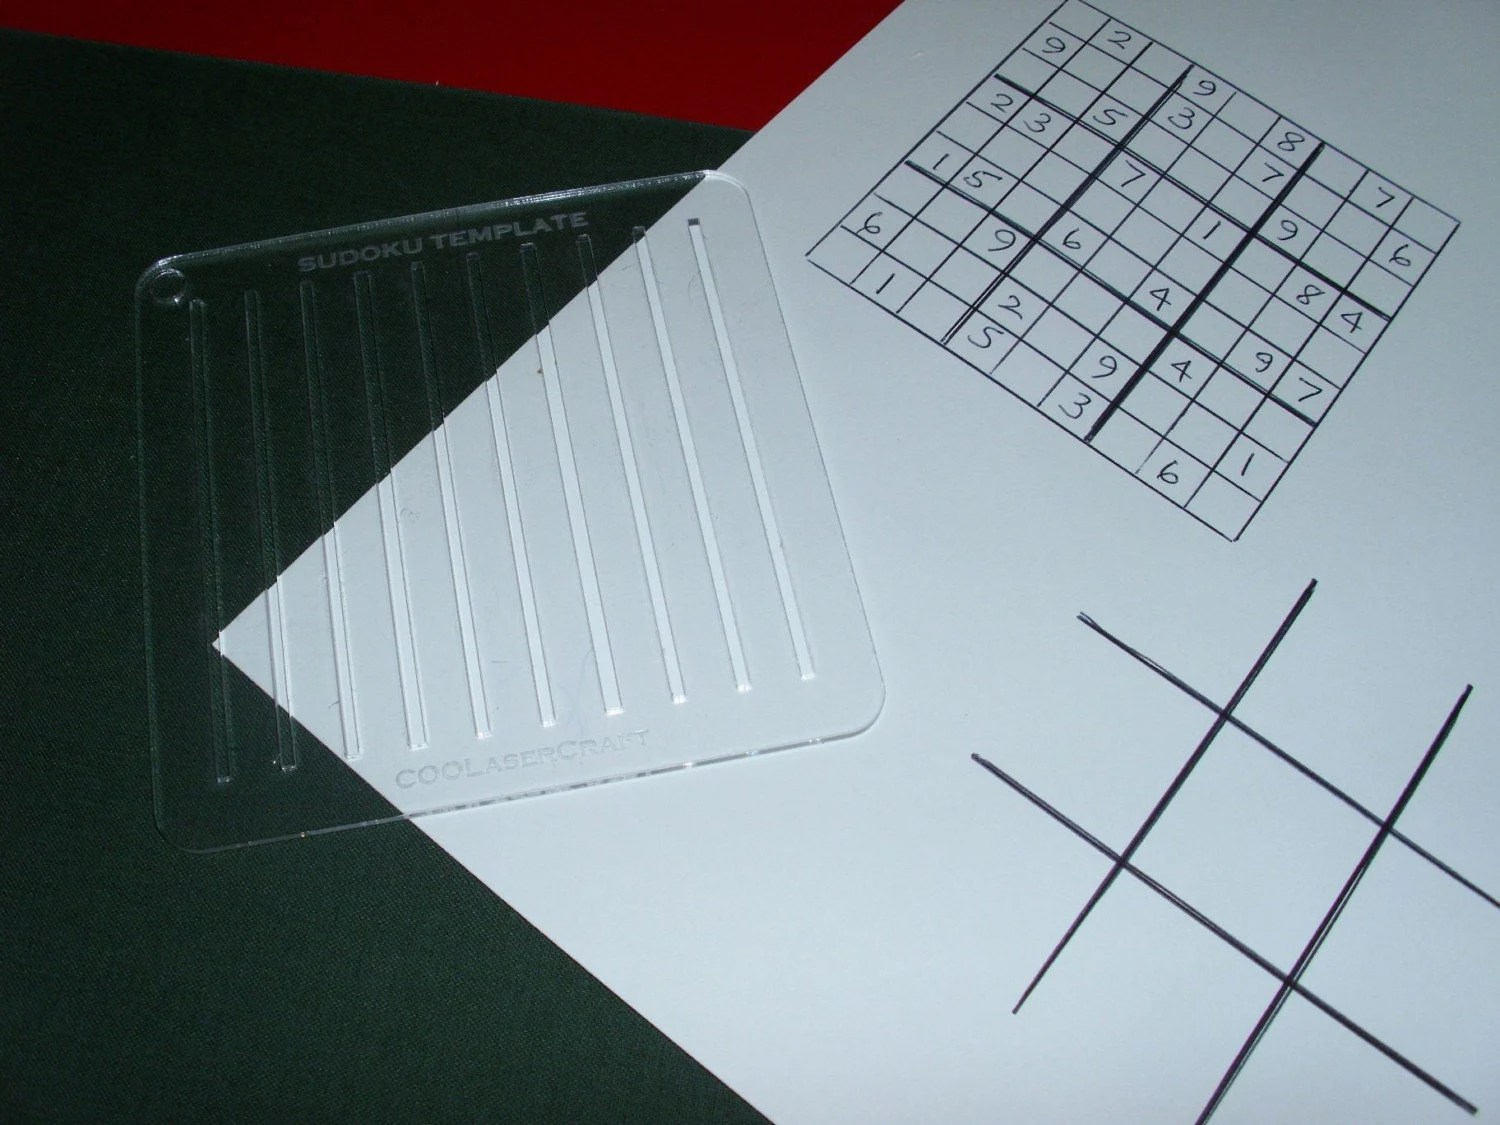 Sudoku Puzzle Grid Template Flexible Plastic By Jptreeman On Etsy